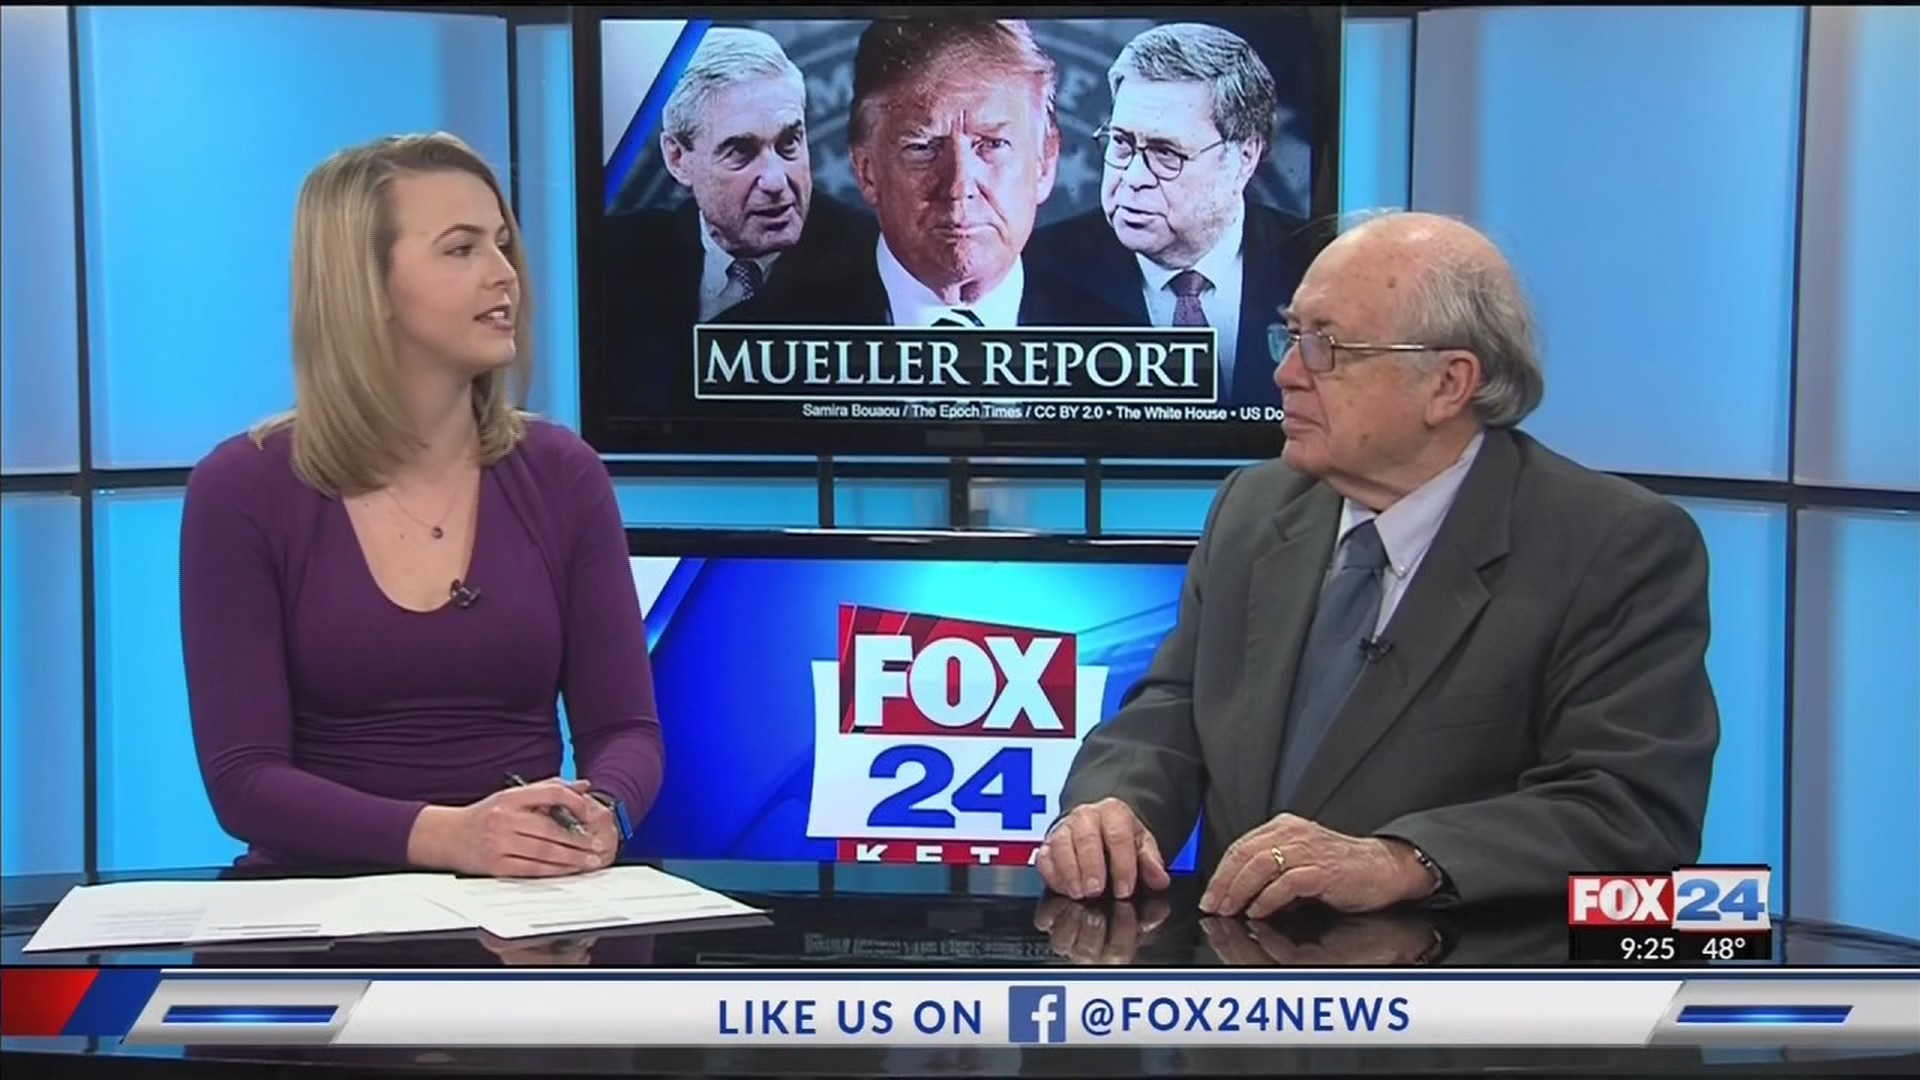 NWA_Political_Analyst_Reacts_to_Mueller__0_20190326024106